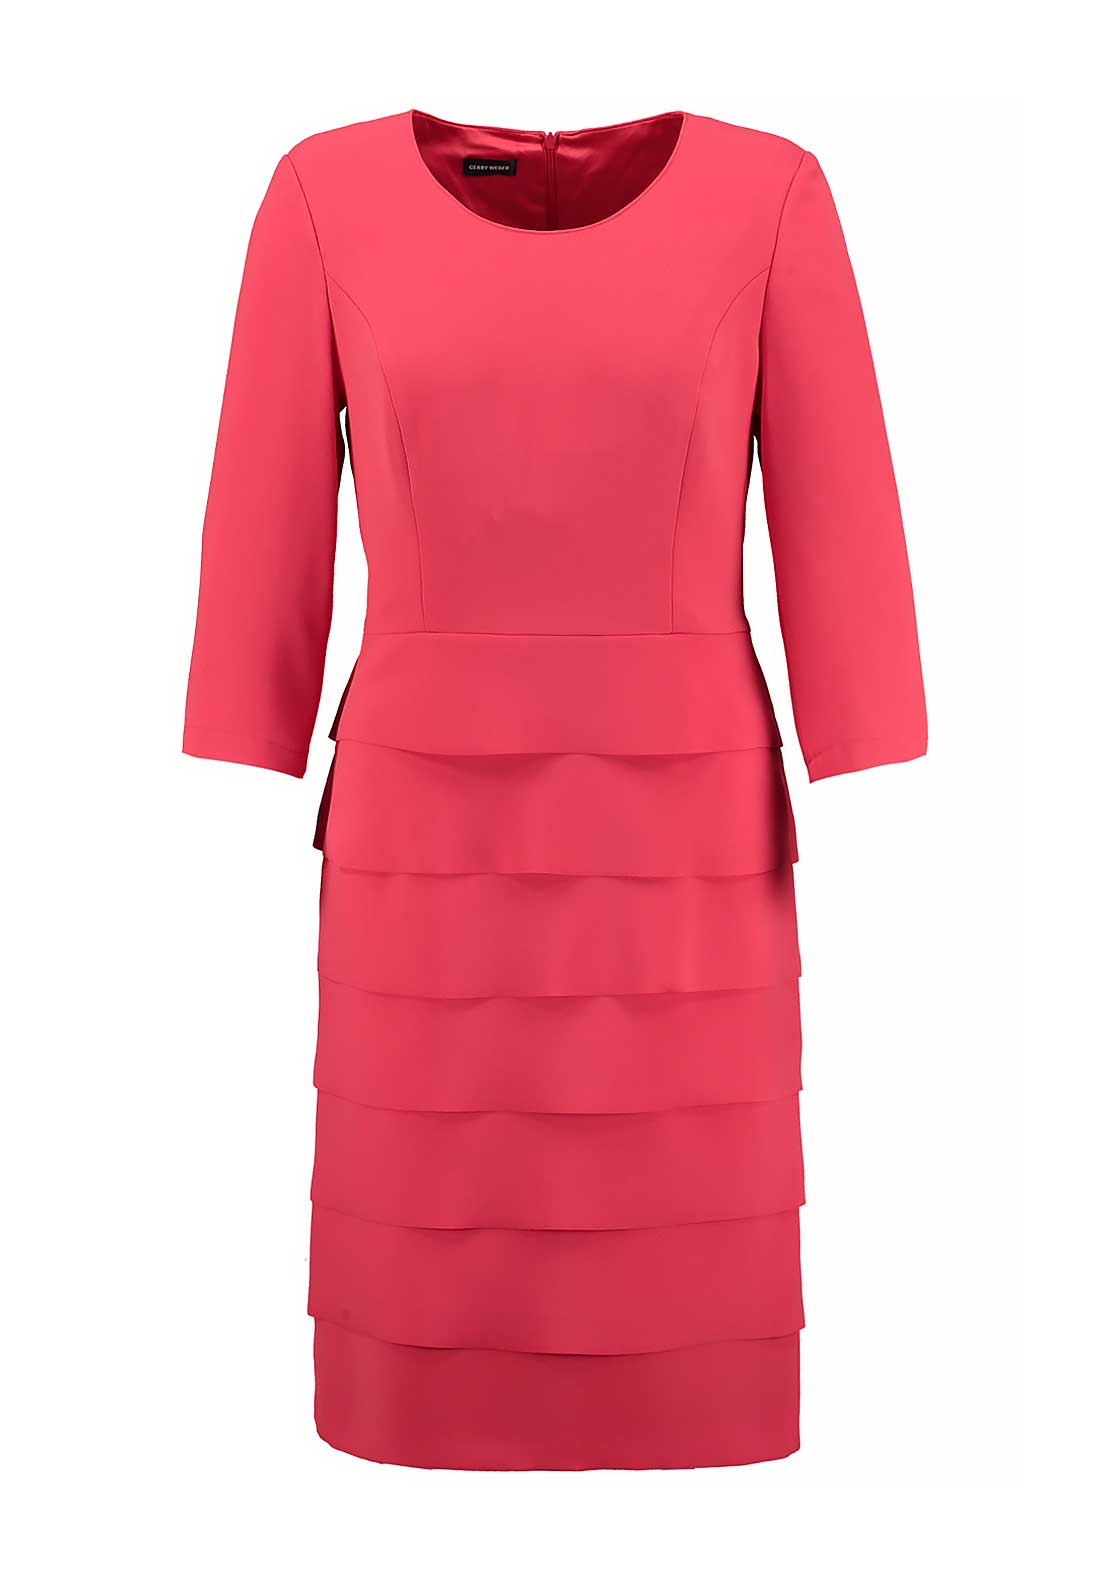 Gerry Weber Cropped Sleeve Layered Shift Dress, Red